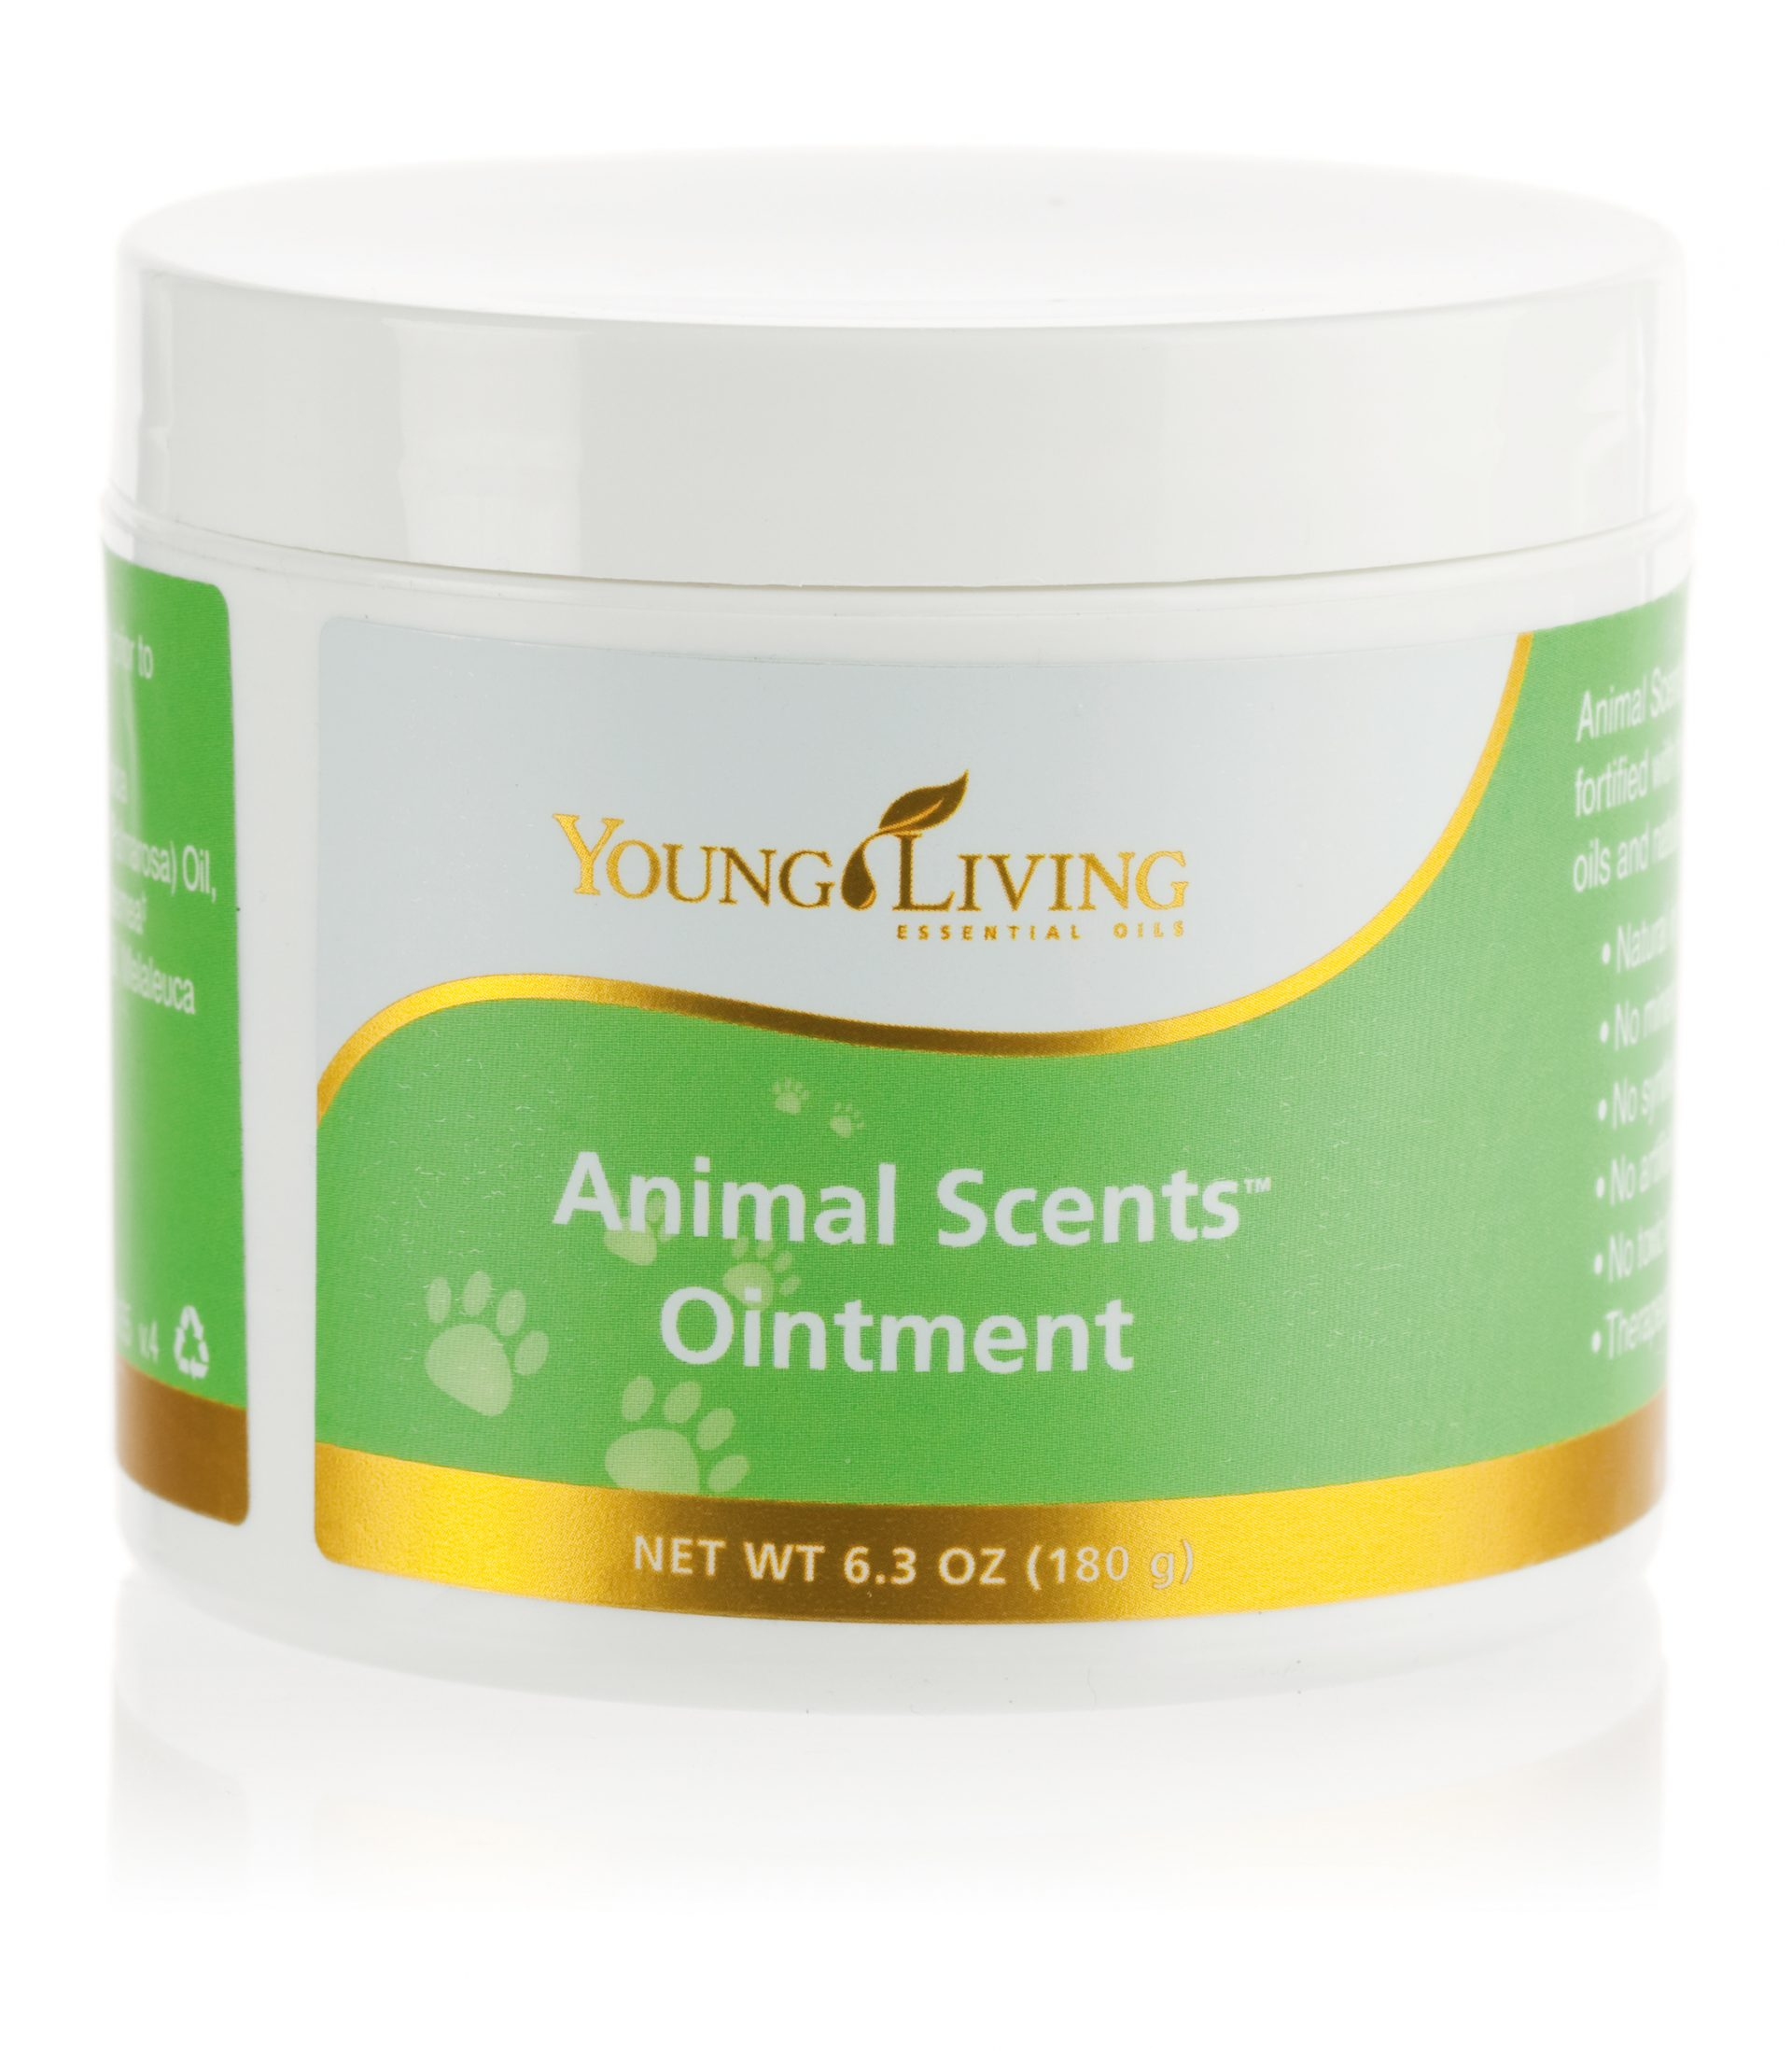 Animal Scents - Ointment